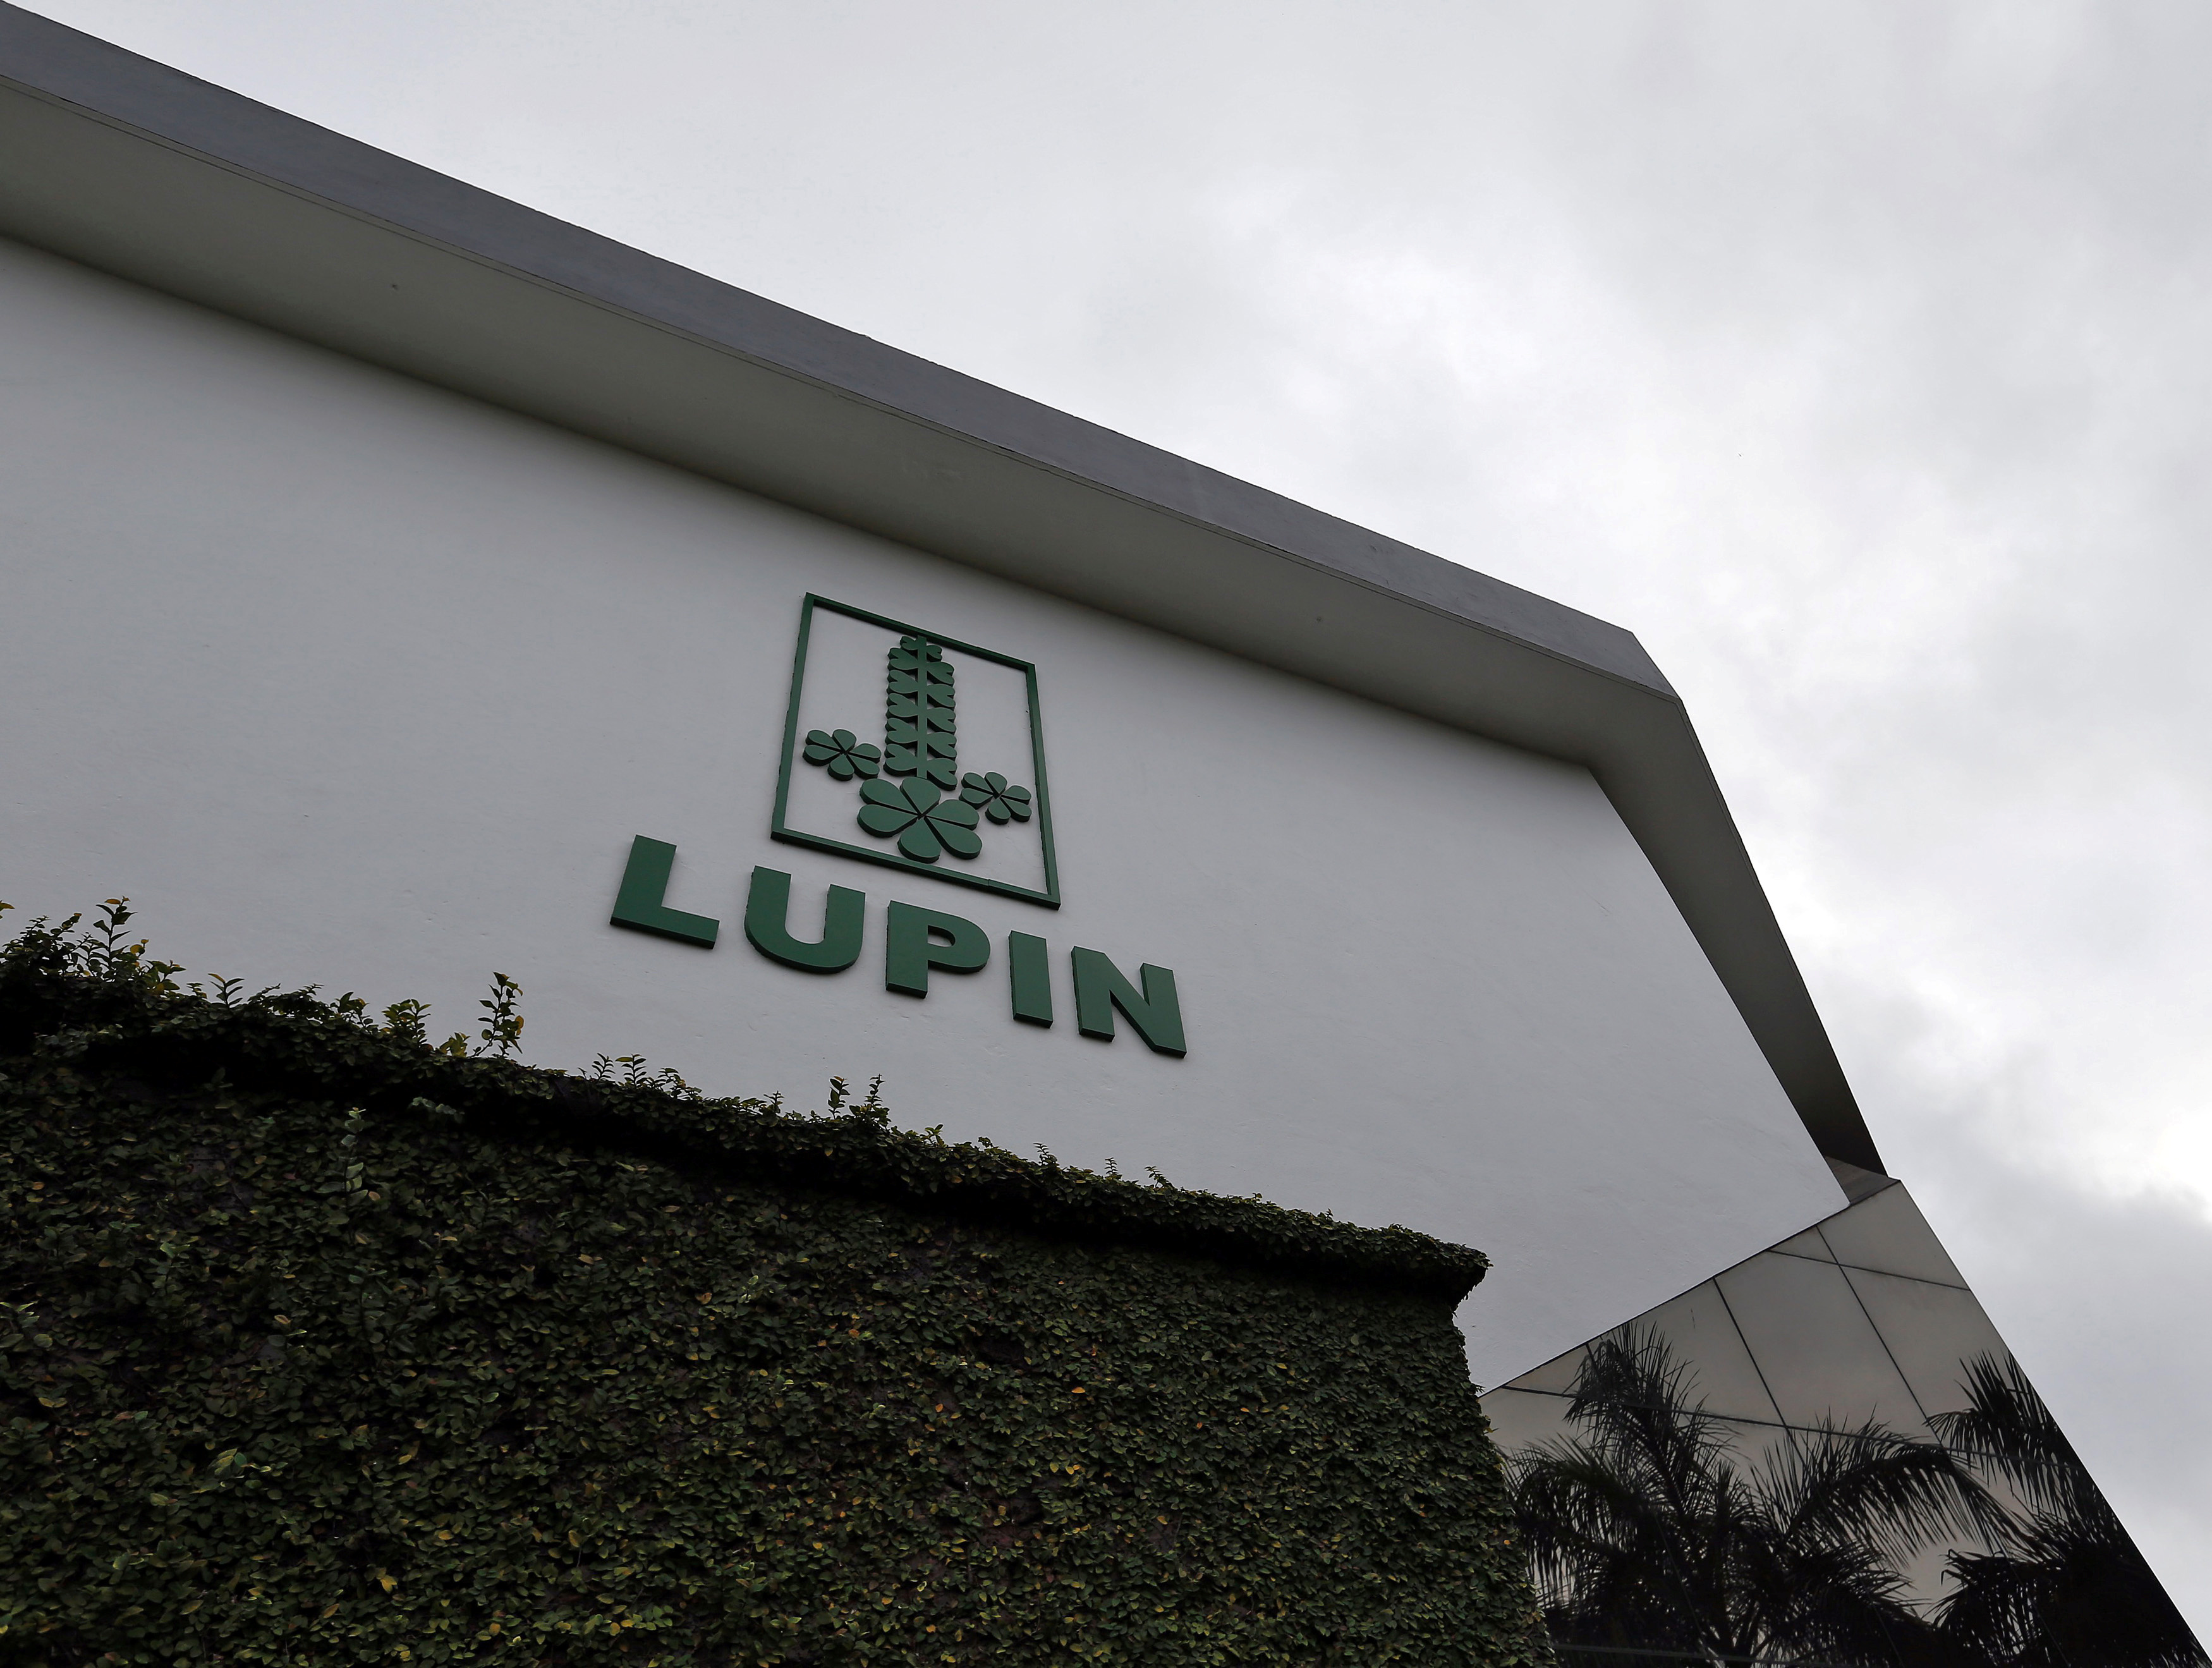 The logo of Lupin, India's No. 2 drugmaker, is seen on the facade of its pharmaceutical plant in Verna, in the western state of Goa, India, June 9, 2017. Picture taken June 9, 2017. REUTERS/Danish Siddiqui